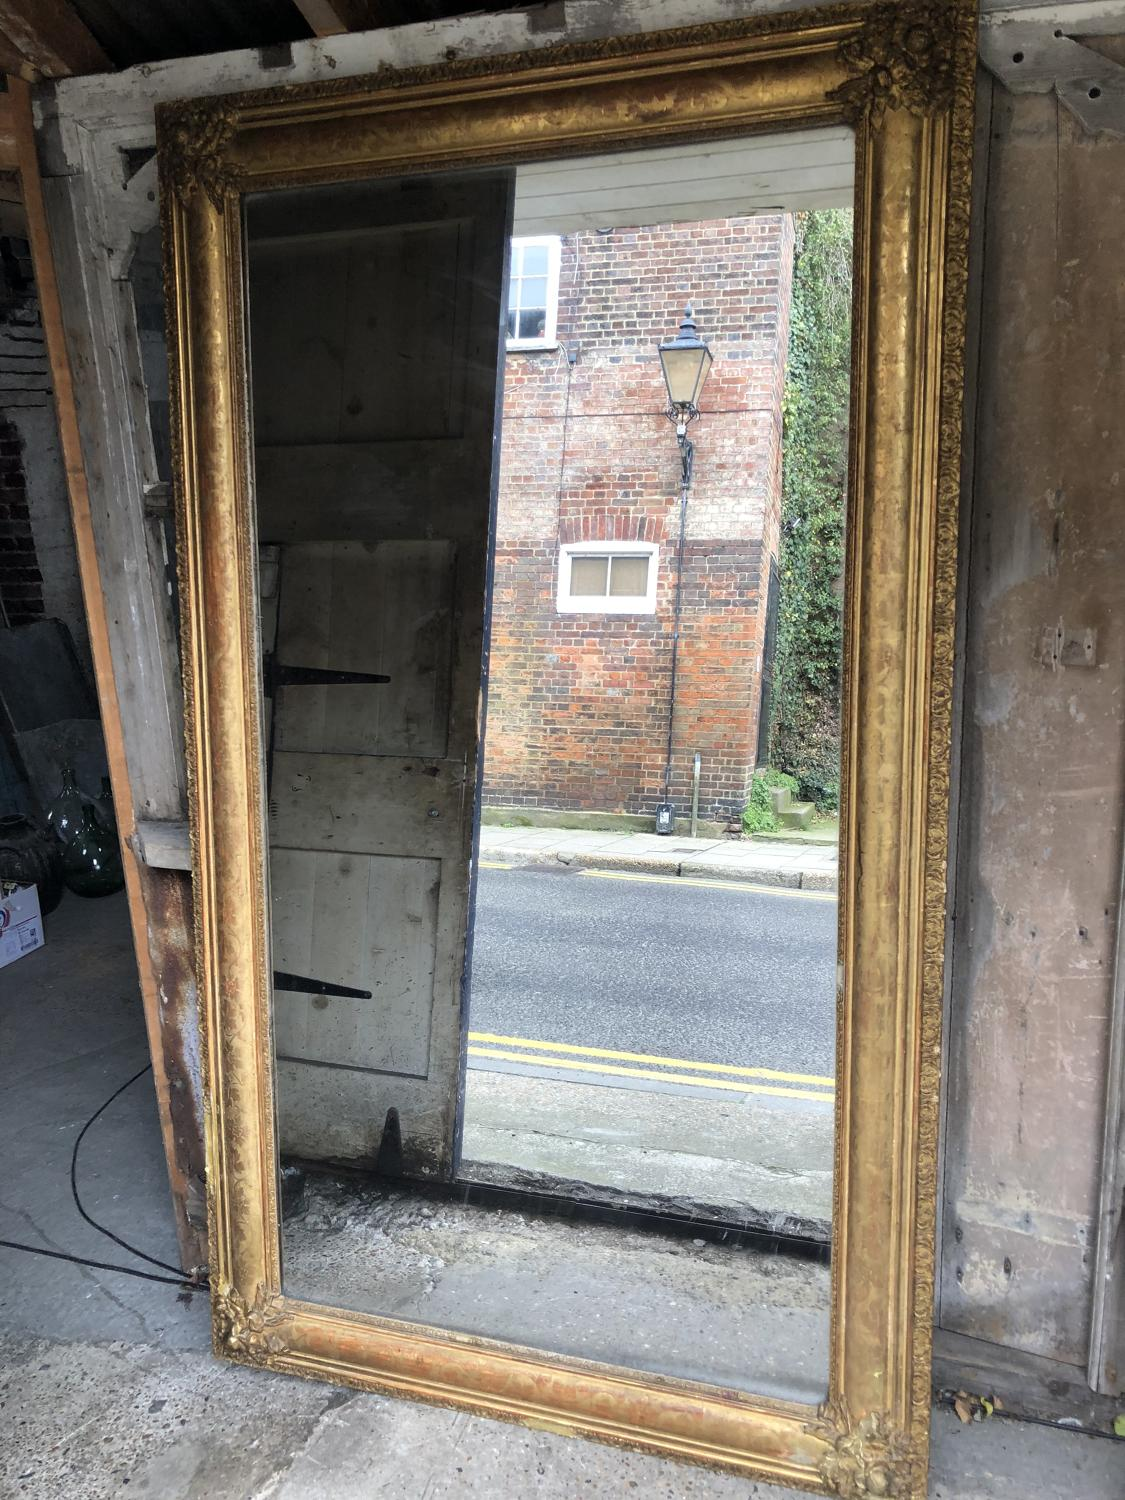 Original mercury plated mirror - early signs of weathering